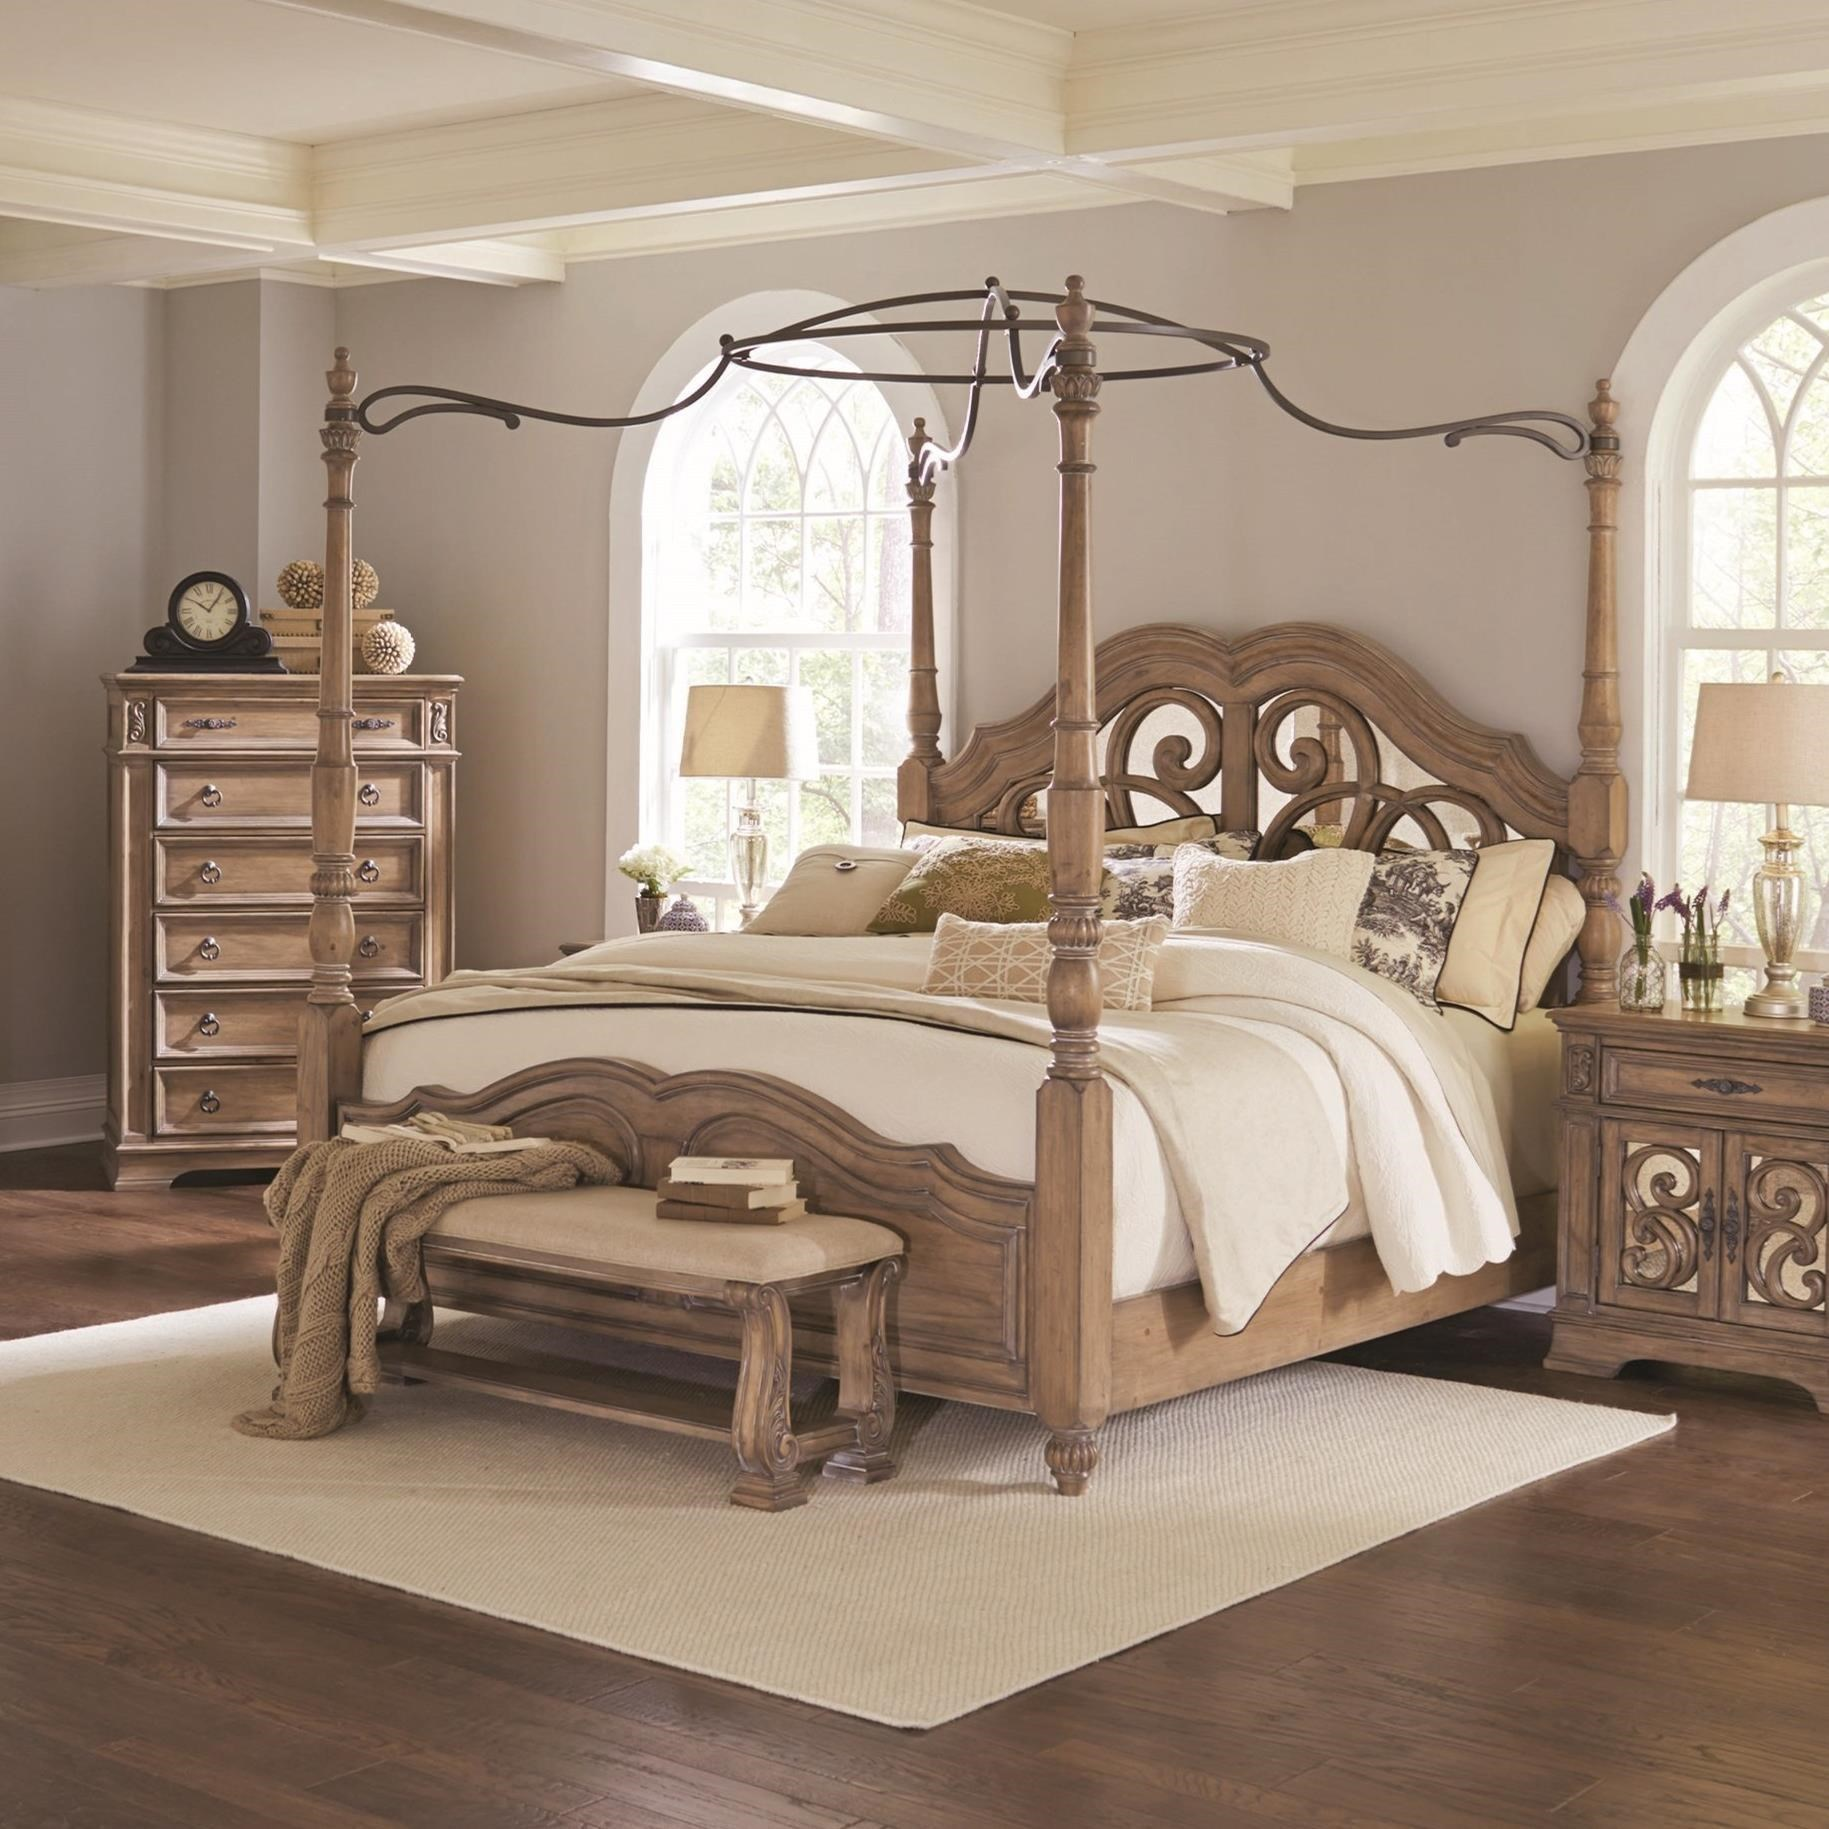 Beds Coaster Ilana Queen Canopy Bed